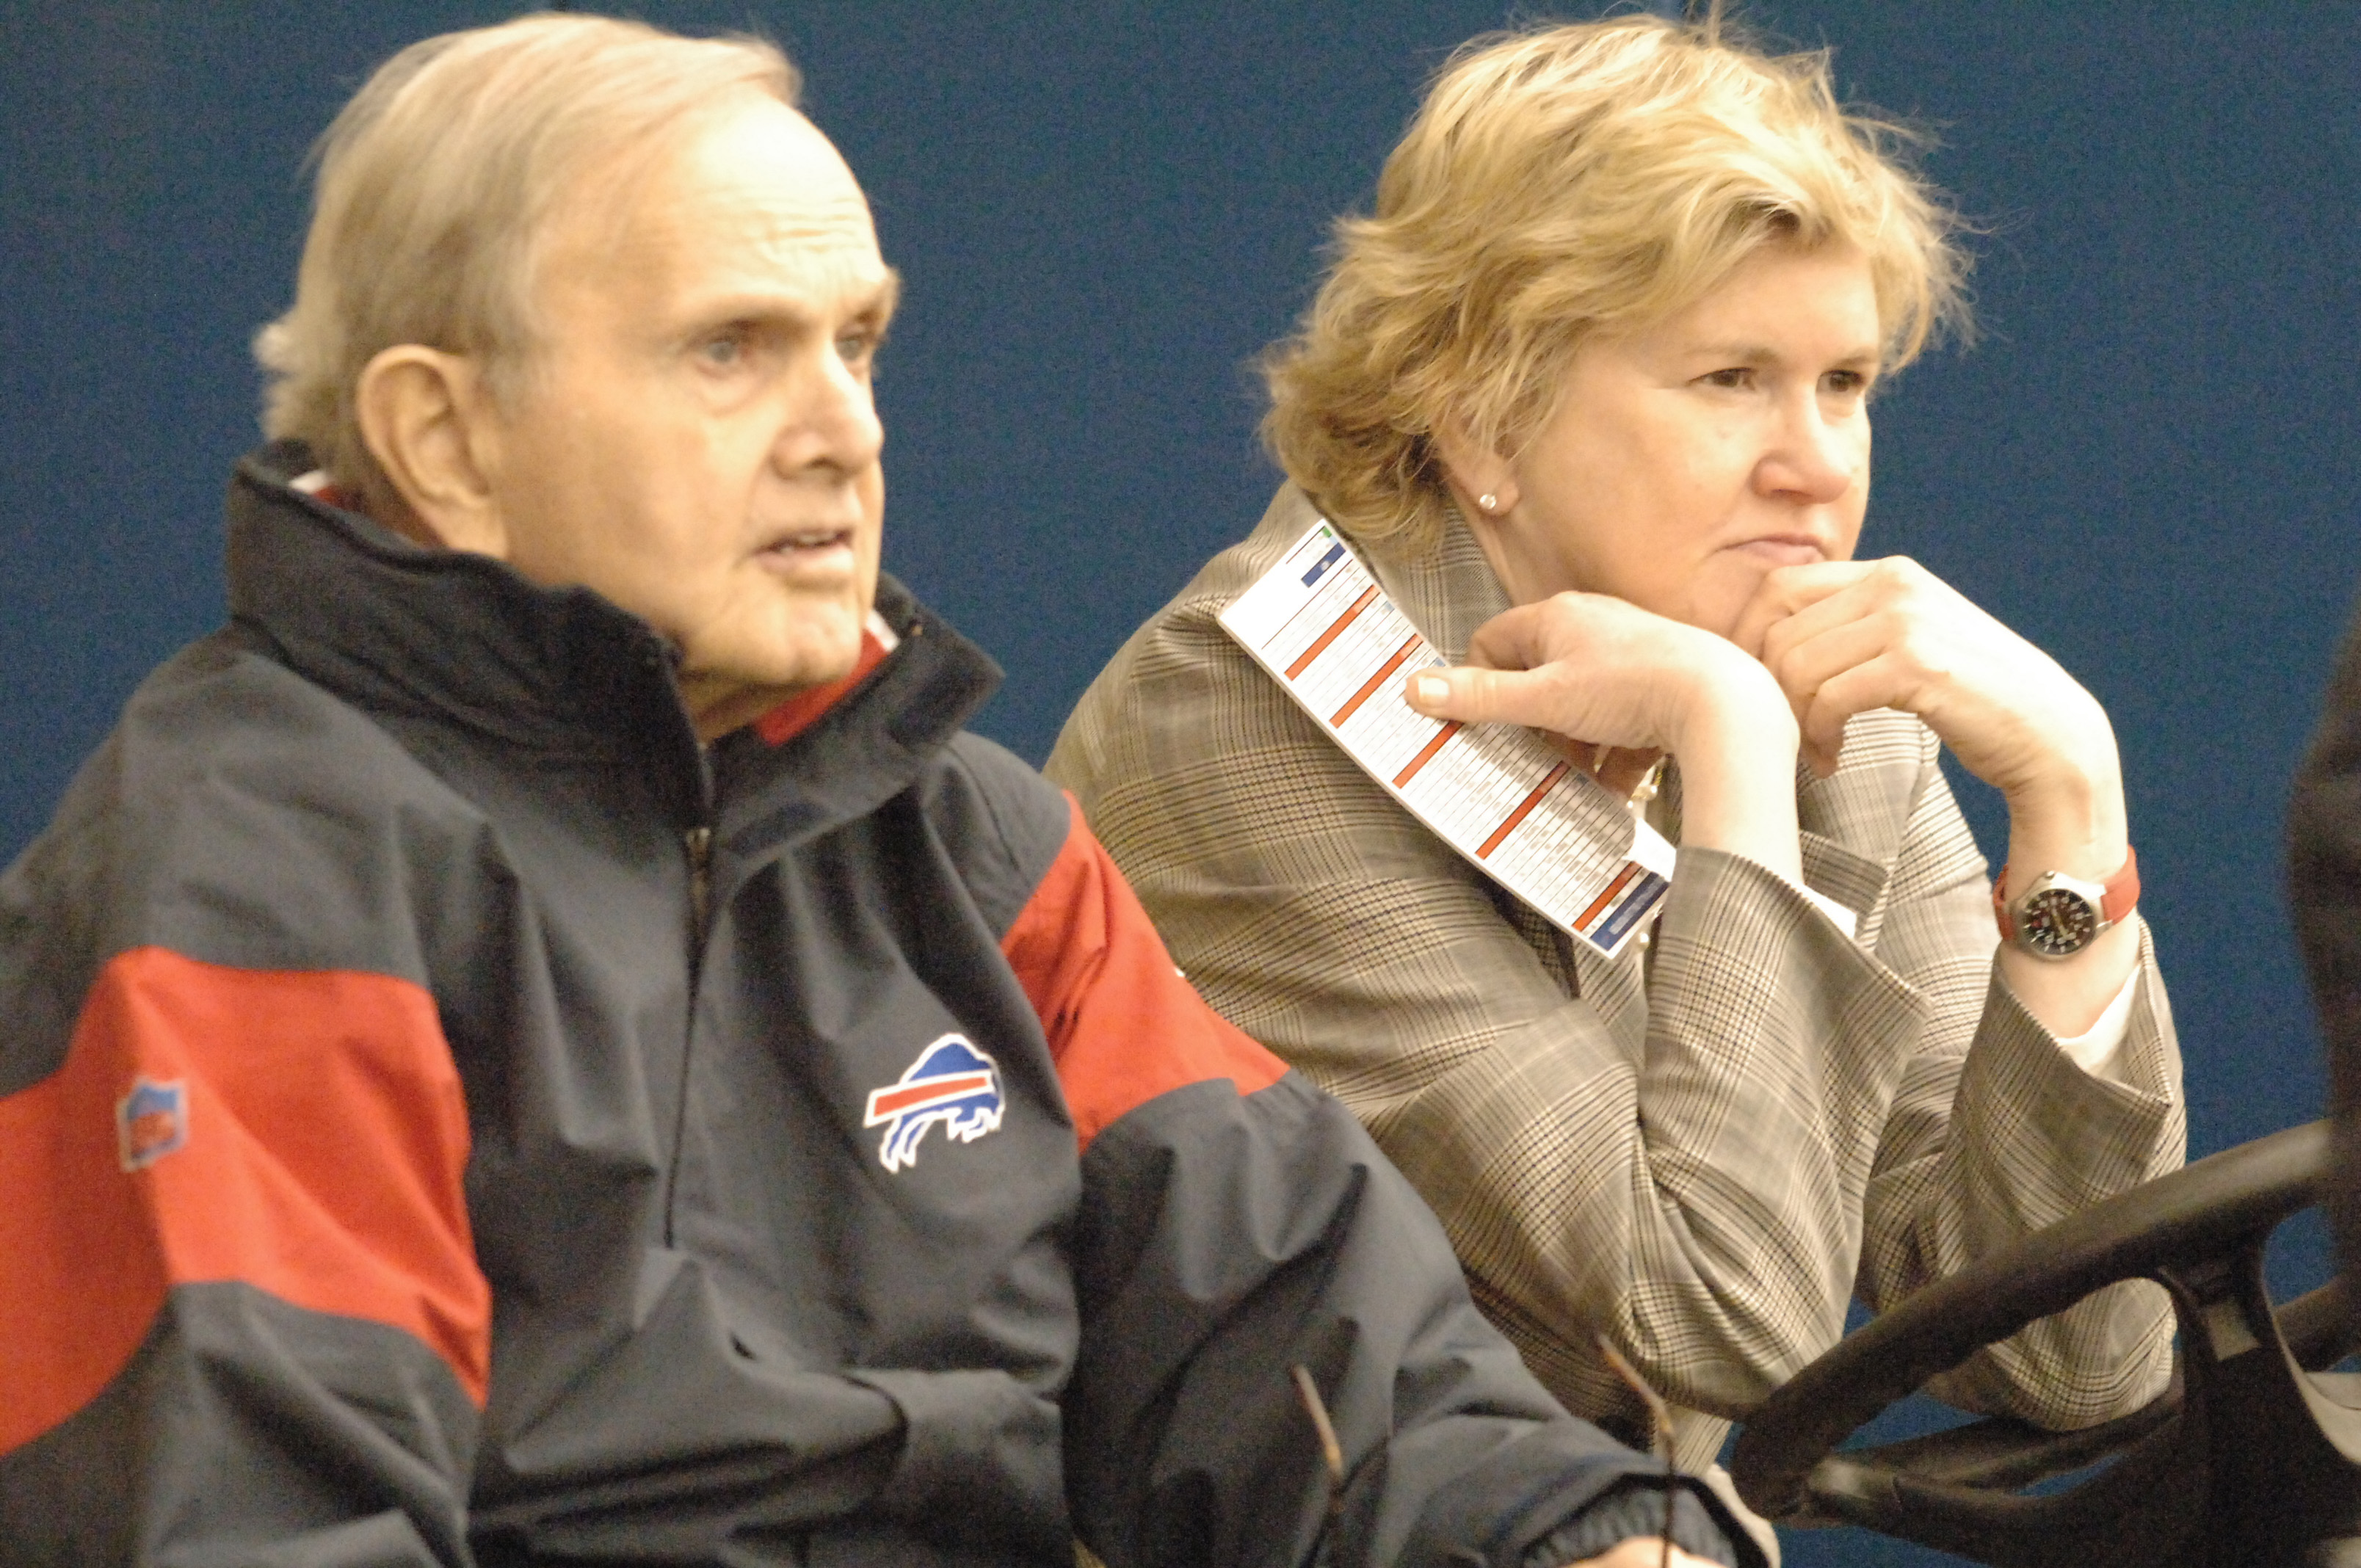 Linda Bogdan watches Bills practice with her father and team owner, Ralph Wilson, in 2005. Bogdan served as the Bills' vice president/assistant director of college and pro scouting. (James P. McCoy/News file photo)